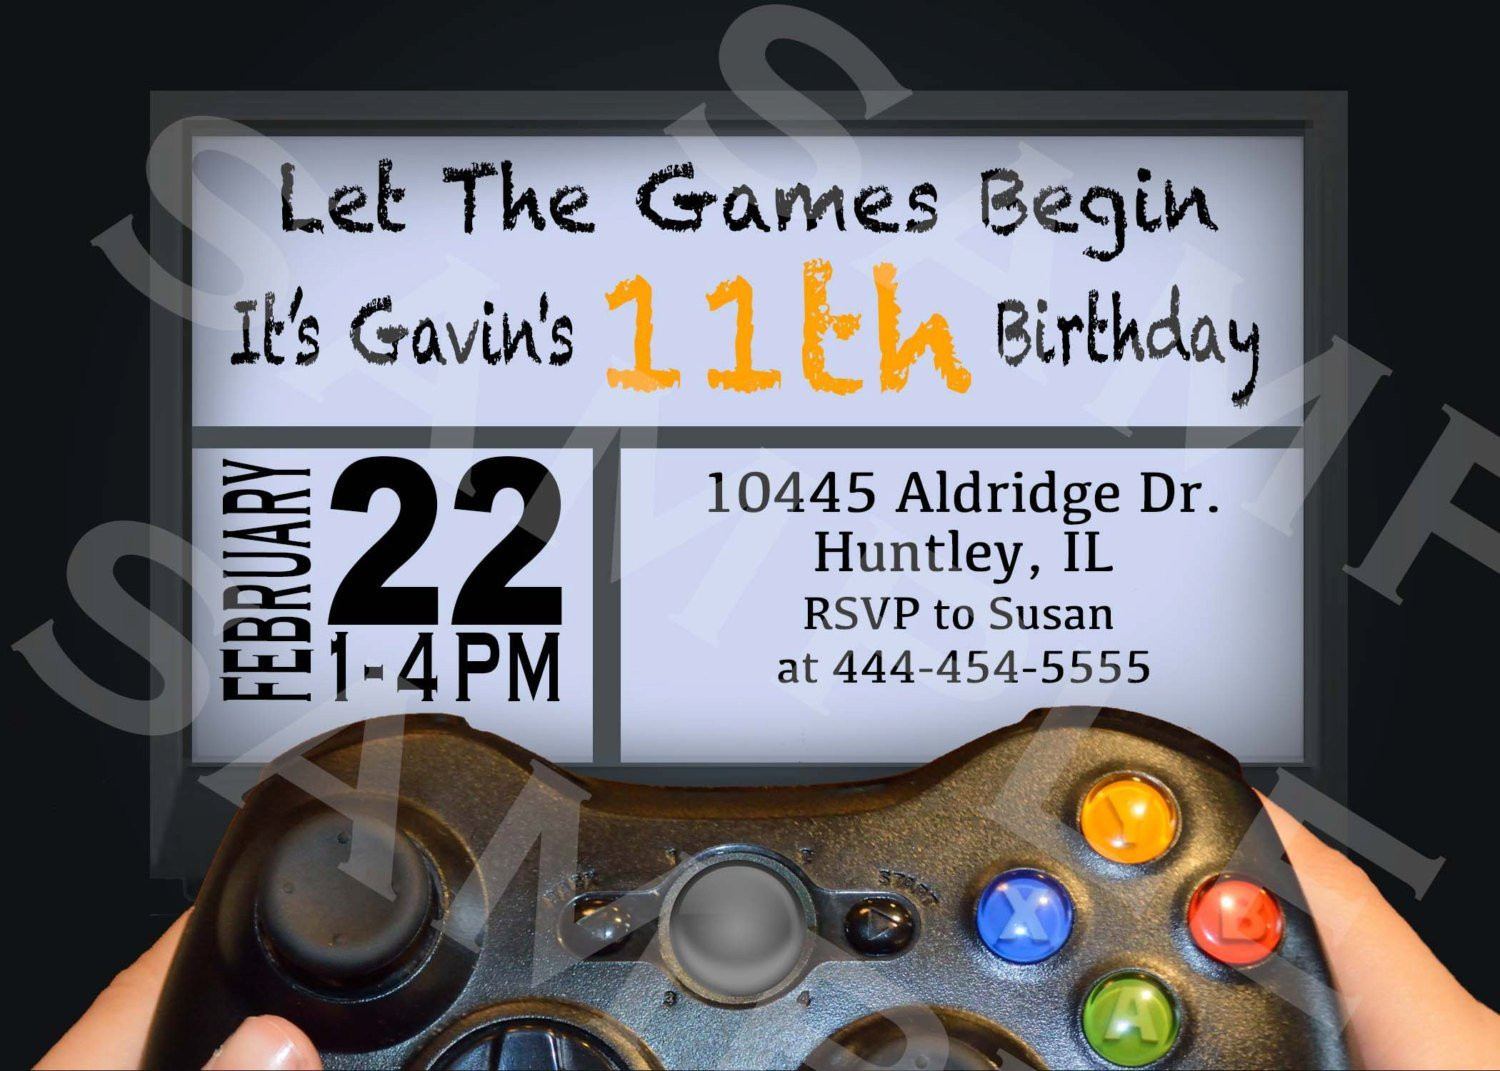 Best ideas about Video Game Birthday Invitations . Save or Pin VIDEO GAME Birthday Party Invitation Gamer Theme Invitation Now.